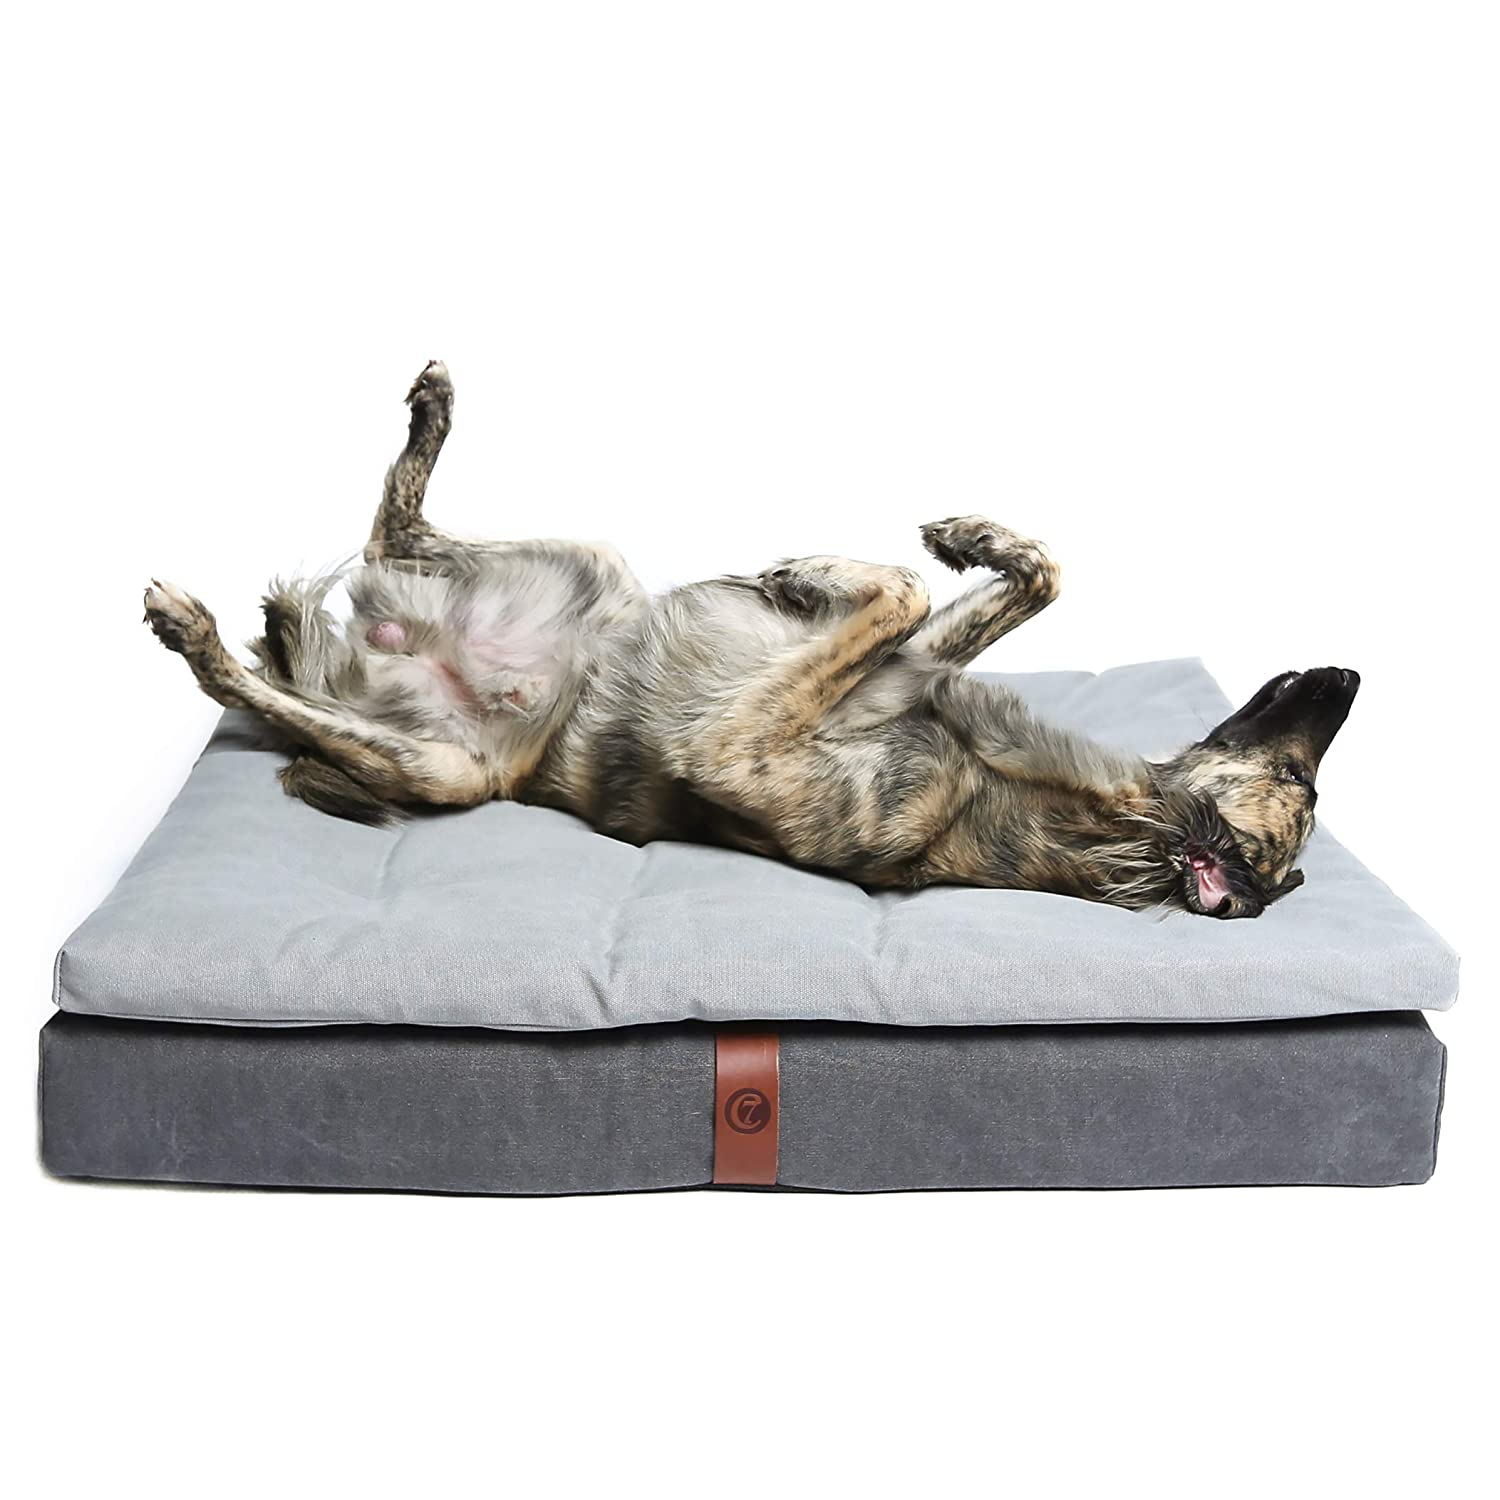 Cloud7 Dog Moon Bed Large (90x65cm) Basalt Grey